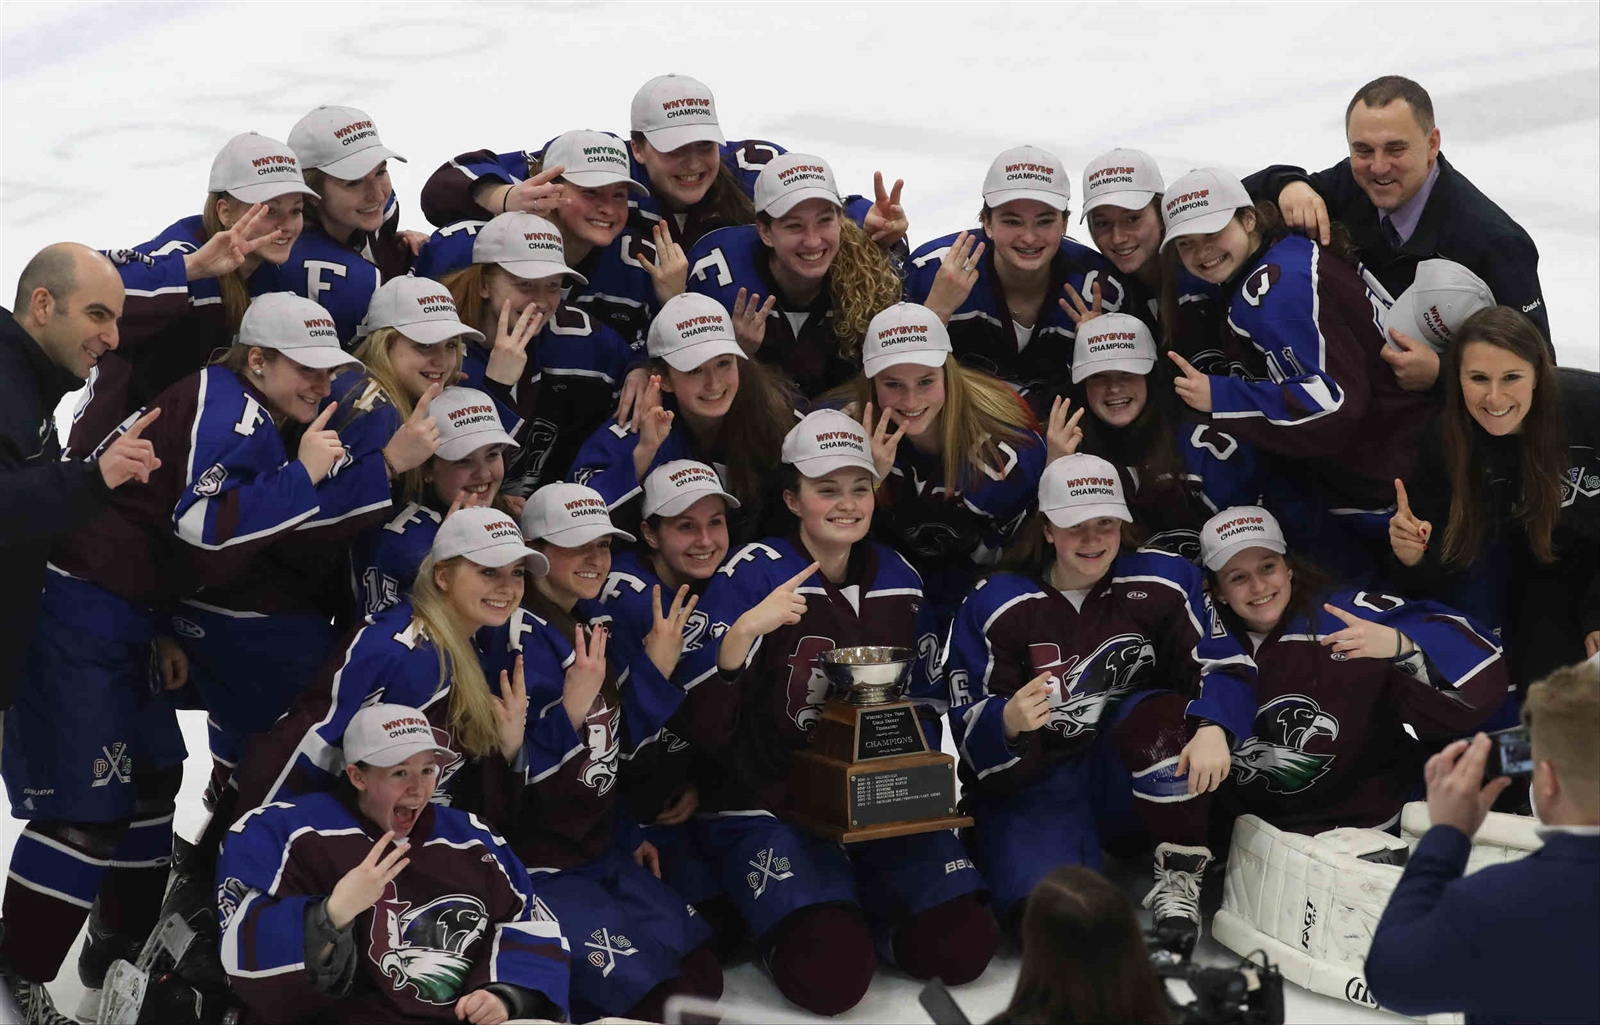 FLOP's Gabby DeMeo holds up the championship cup after her team beat Clarence/Amherst/SH 3-1 for the 2018 Girls Ice Hockey Federation Championship at the HarborCenter.